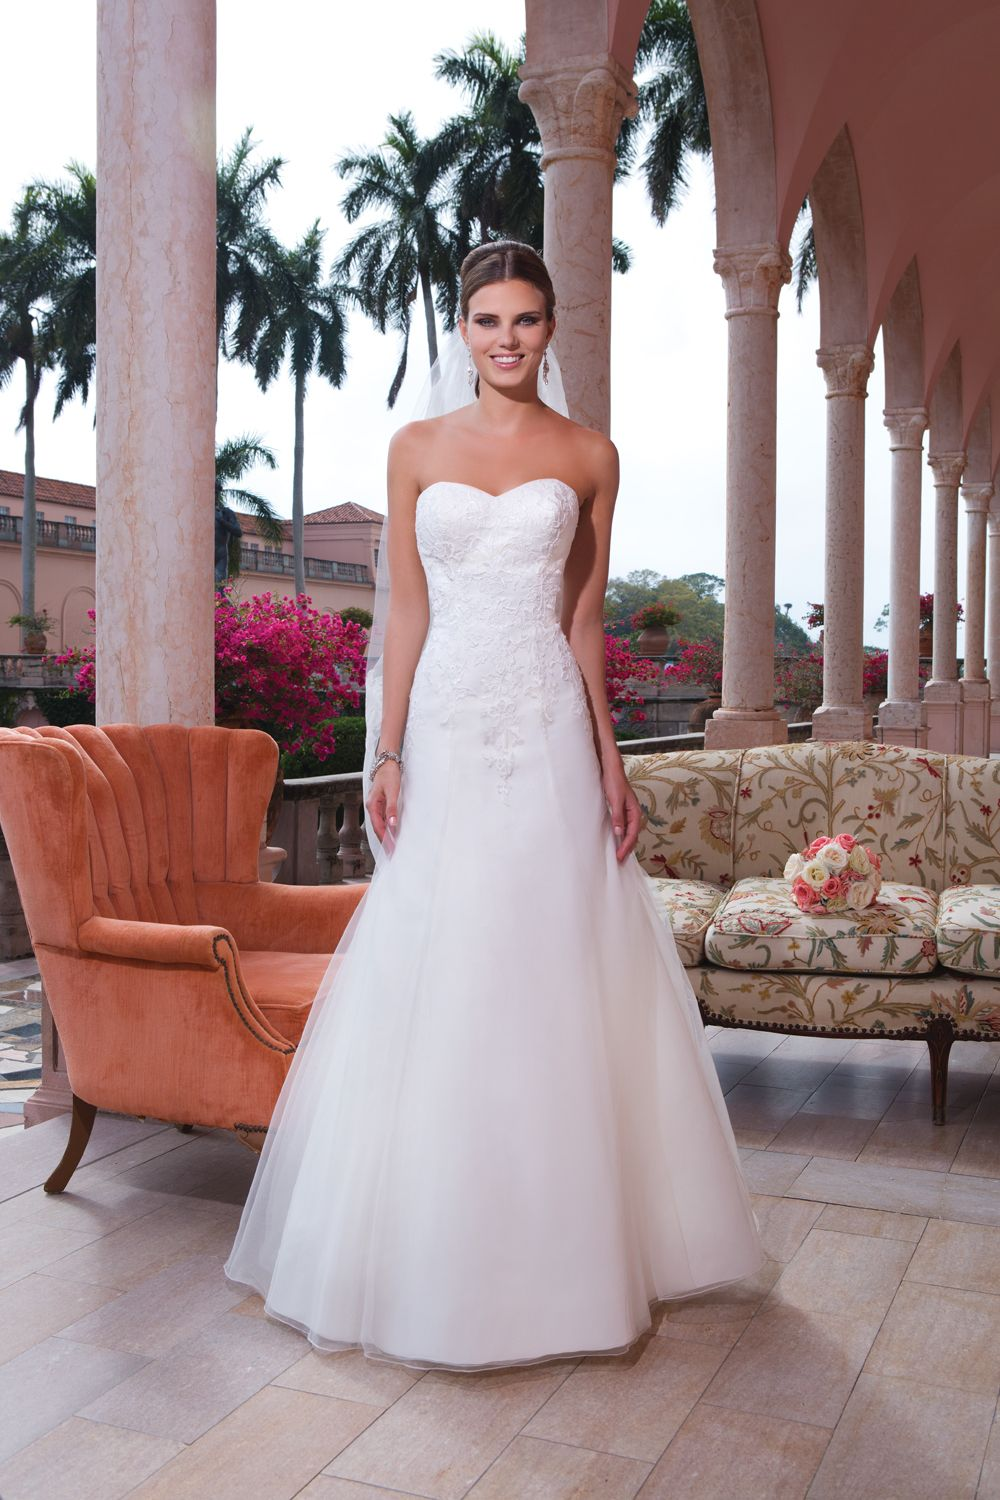 Where can i rent a wedding dress  We were thrilled to be asked to provide furniture rentals for the